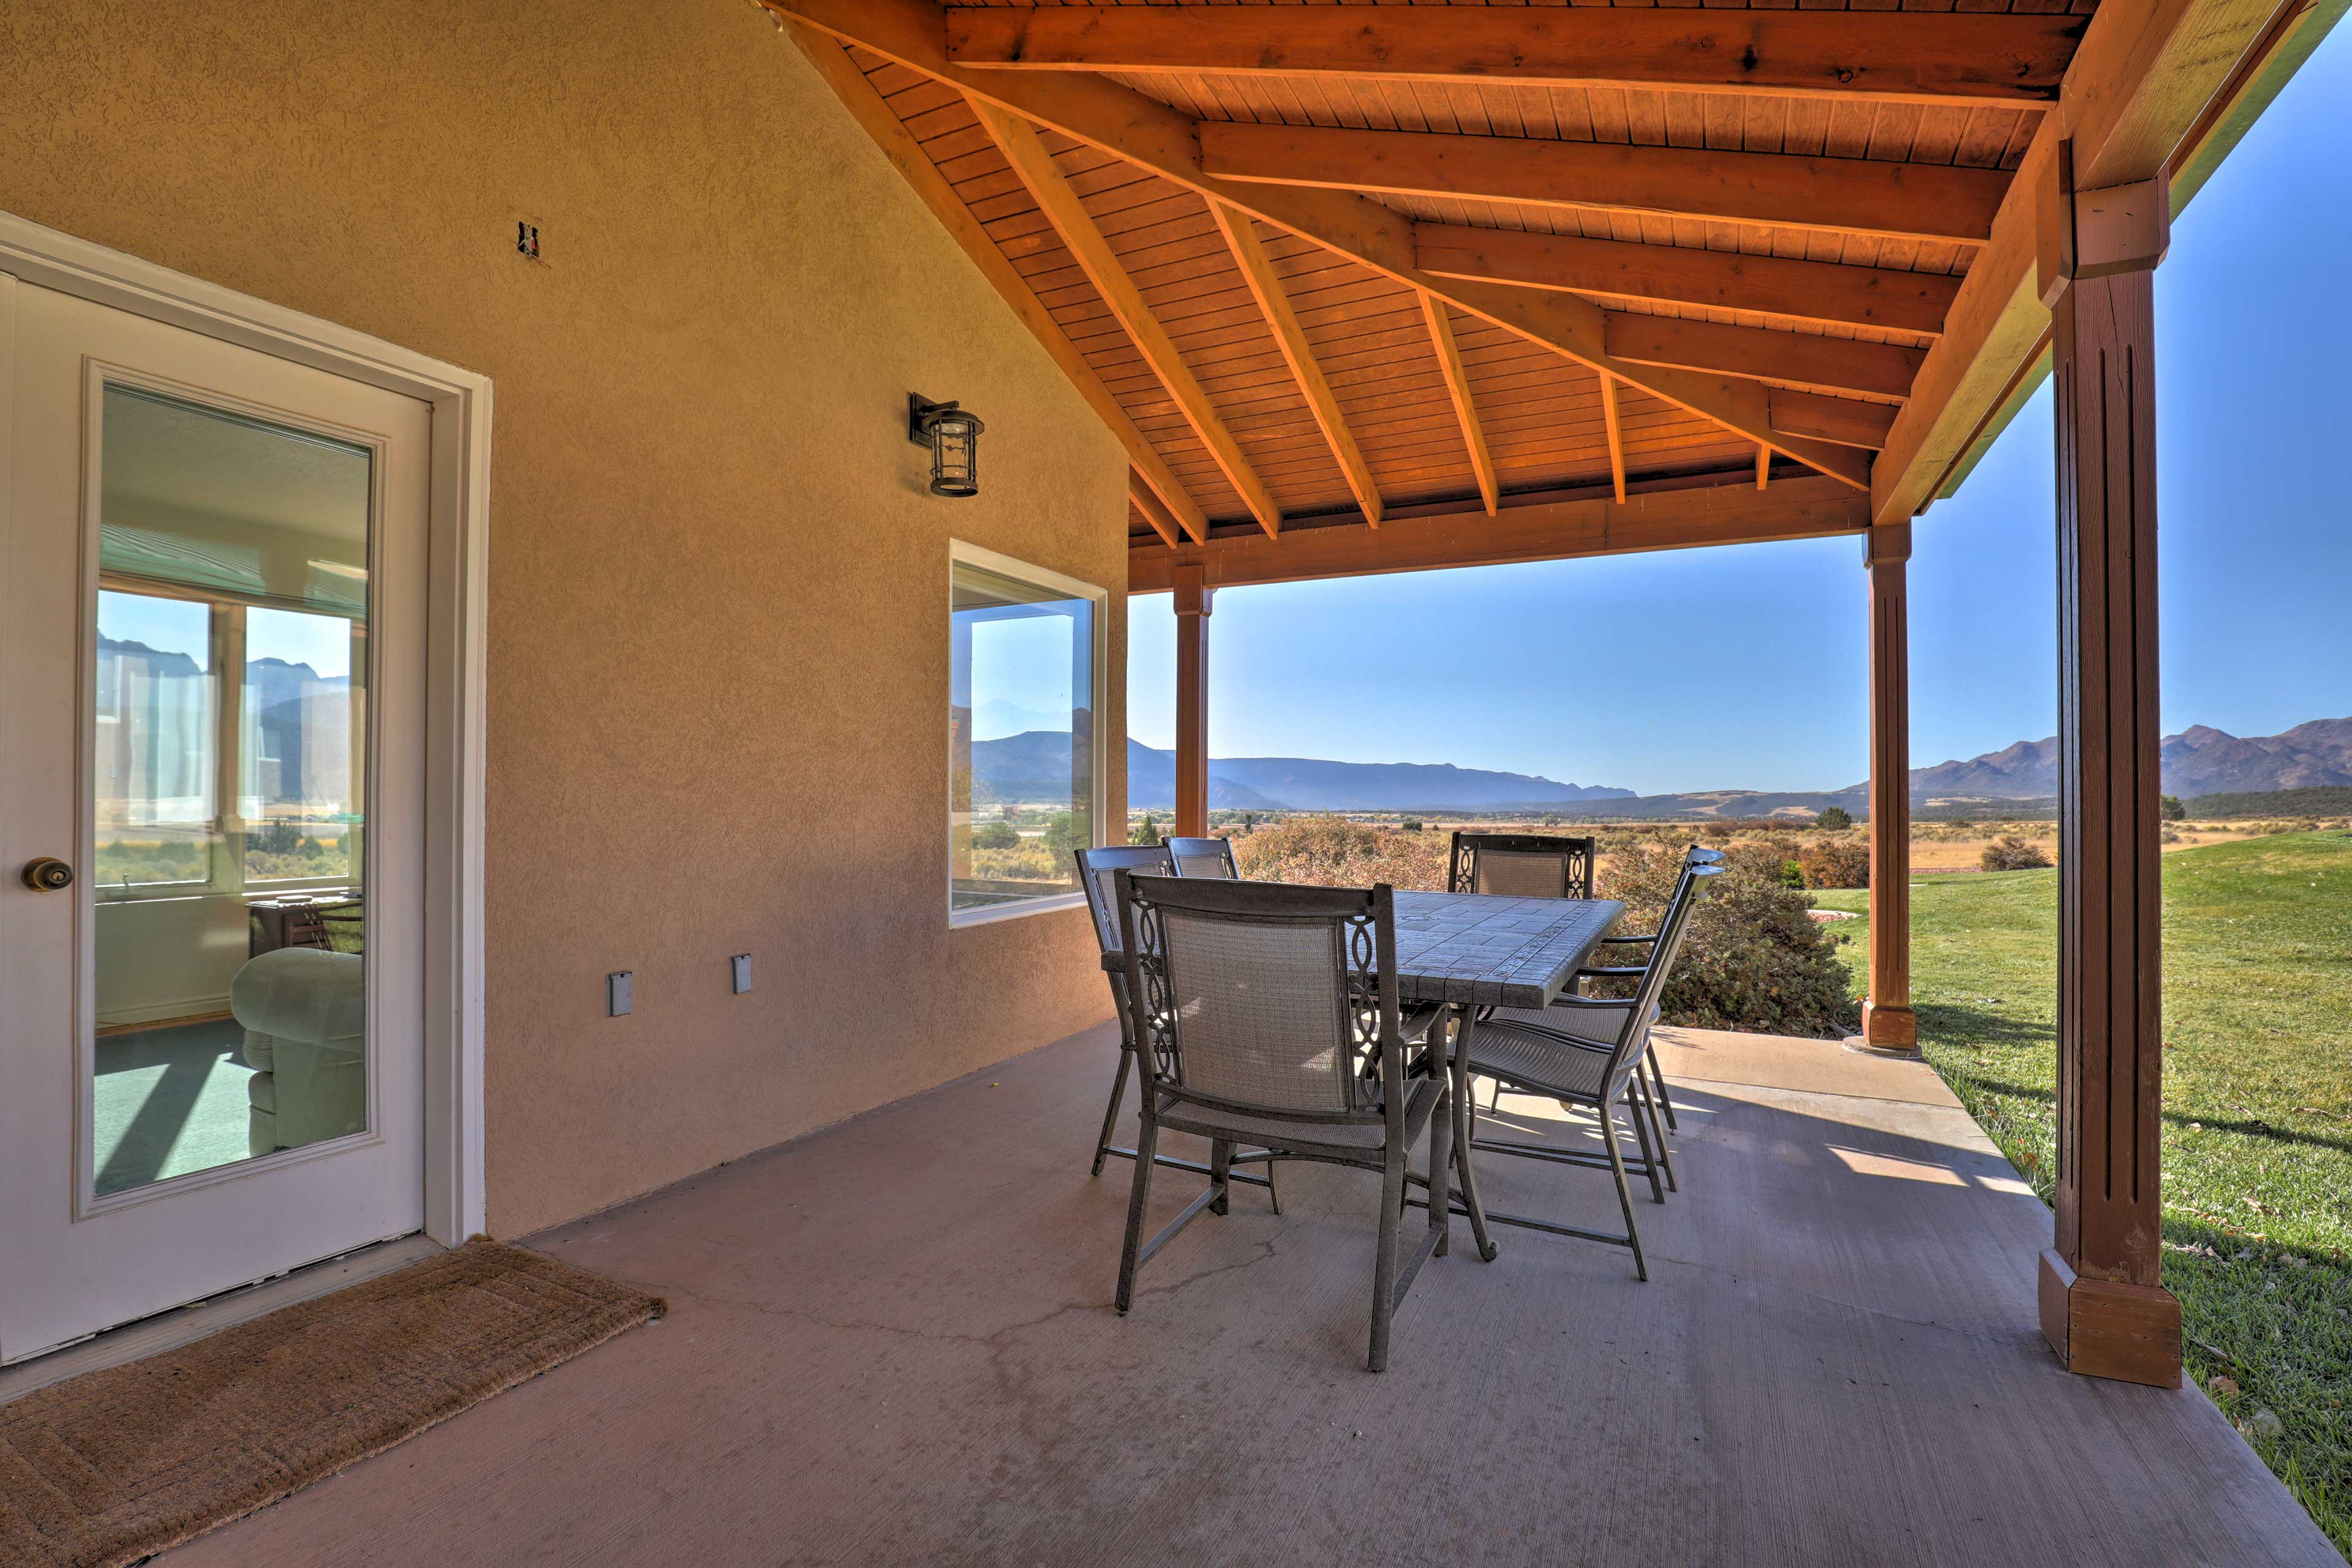 Step outside and enjoy some shade on the covered patio.